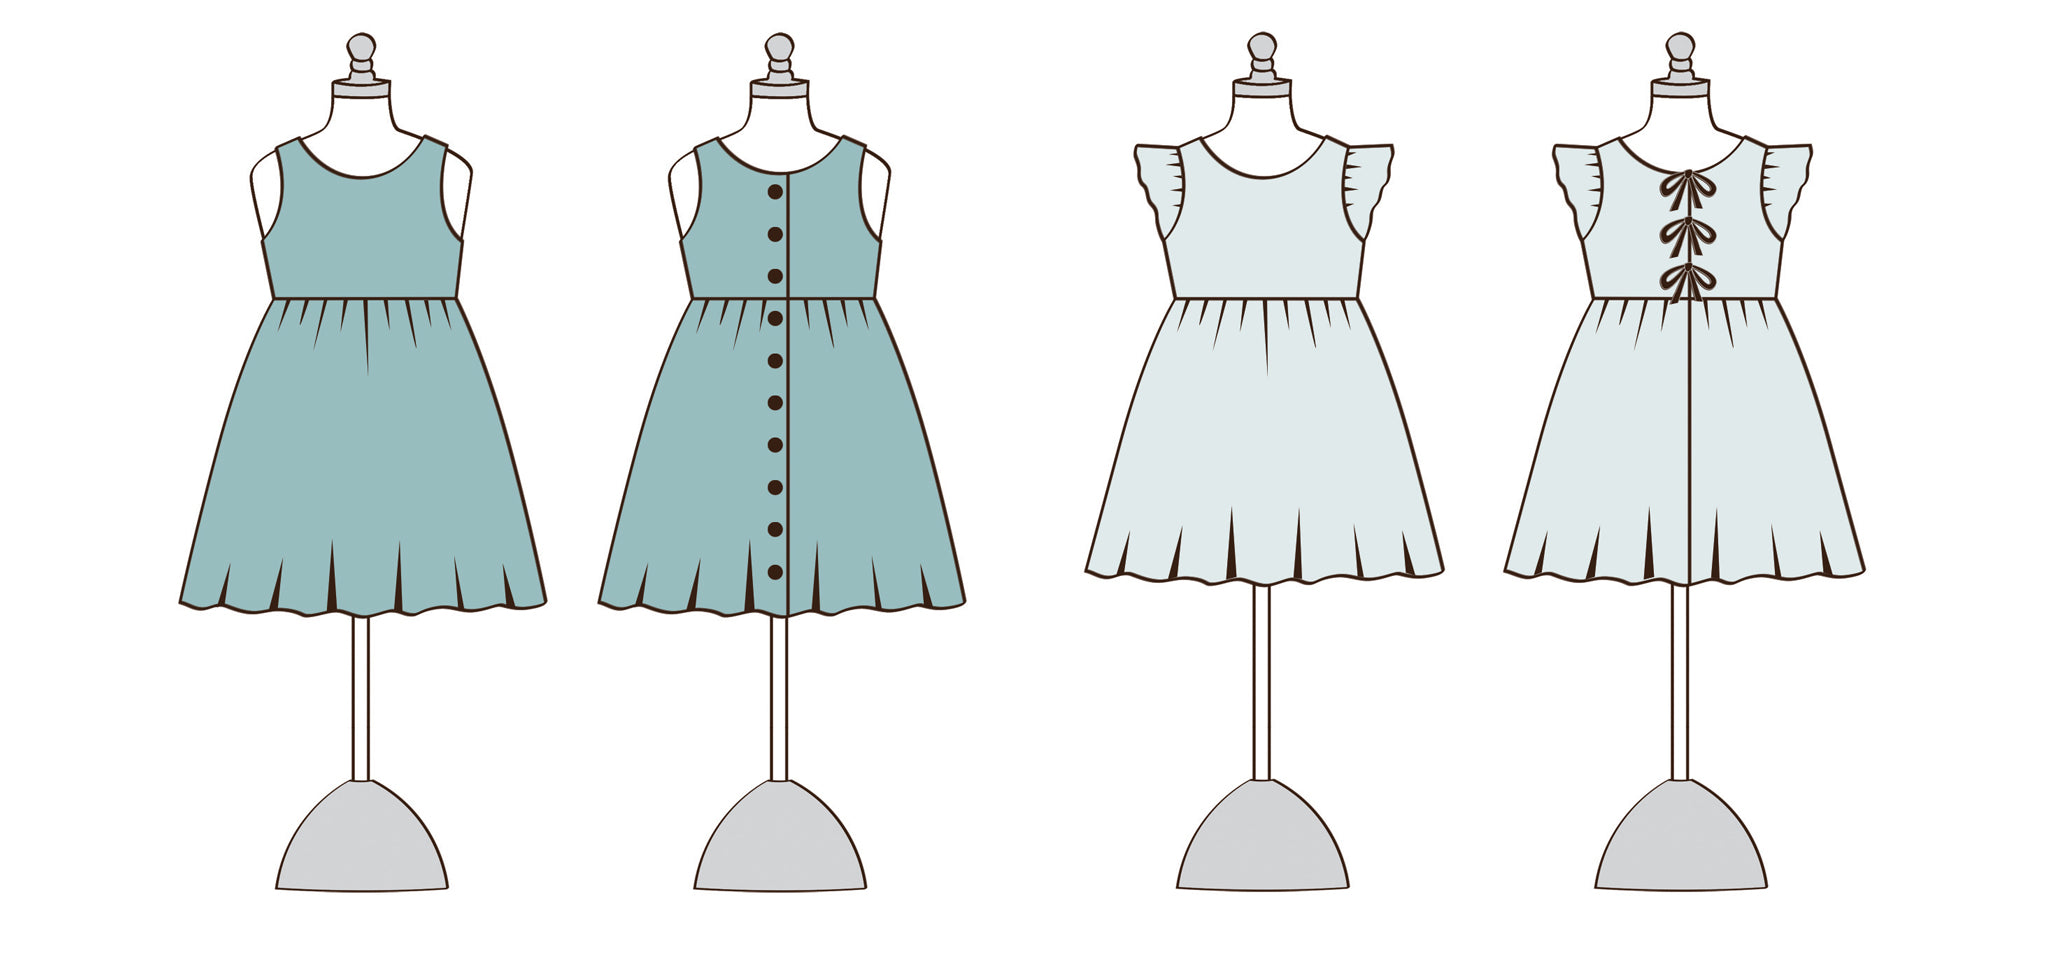 image about Printable Barbie Clothes Patterns named Barbie Gown Designs Free of charge Printable Pdf